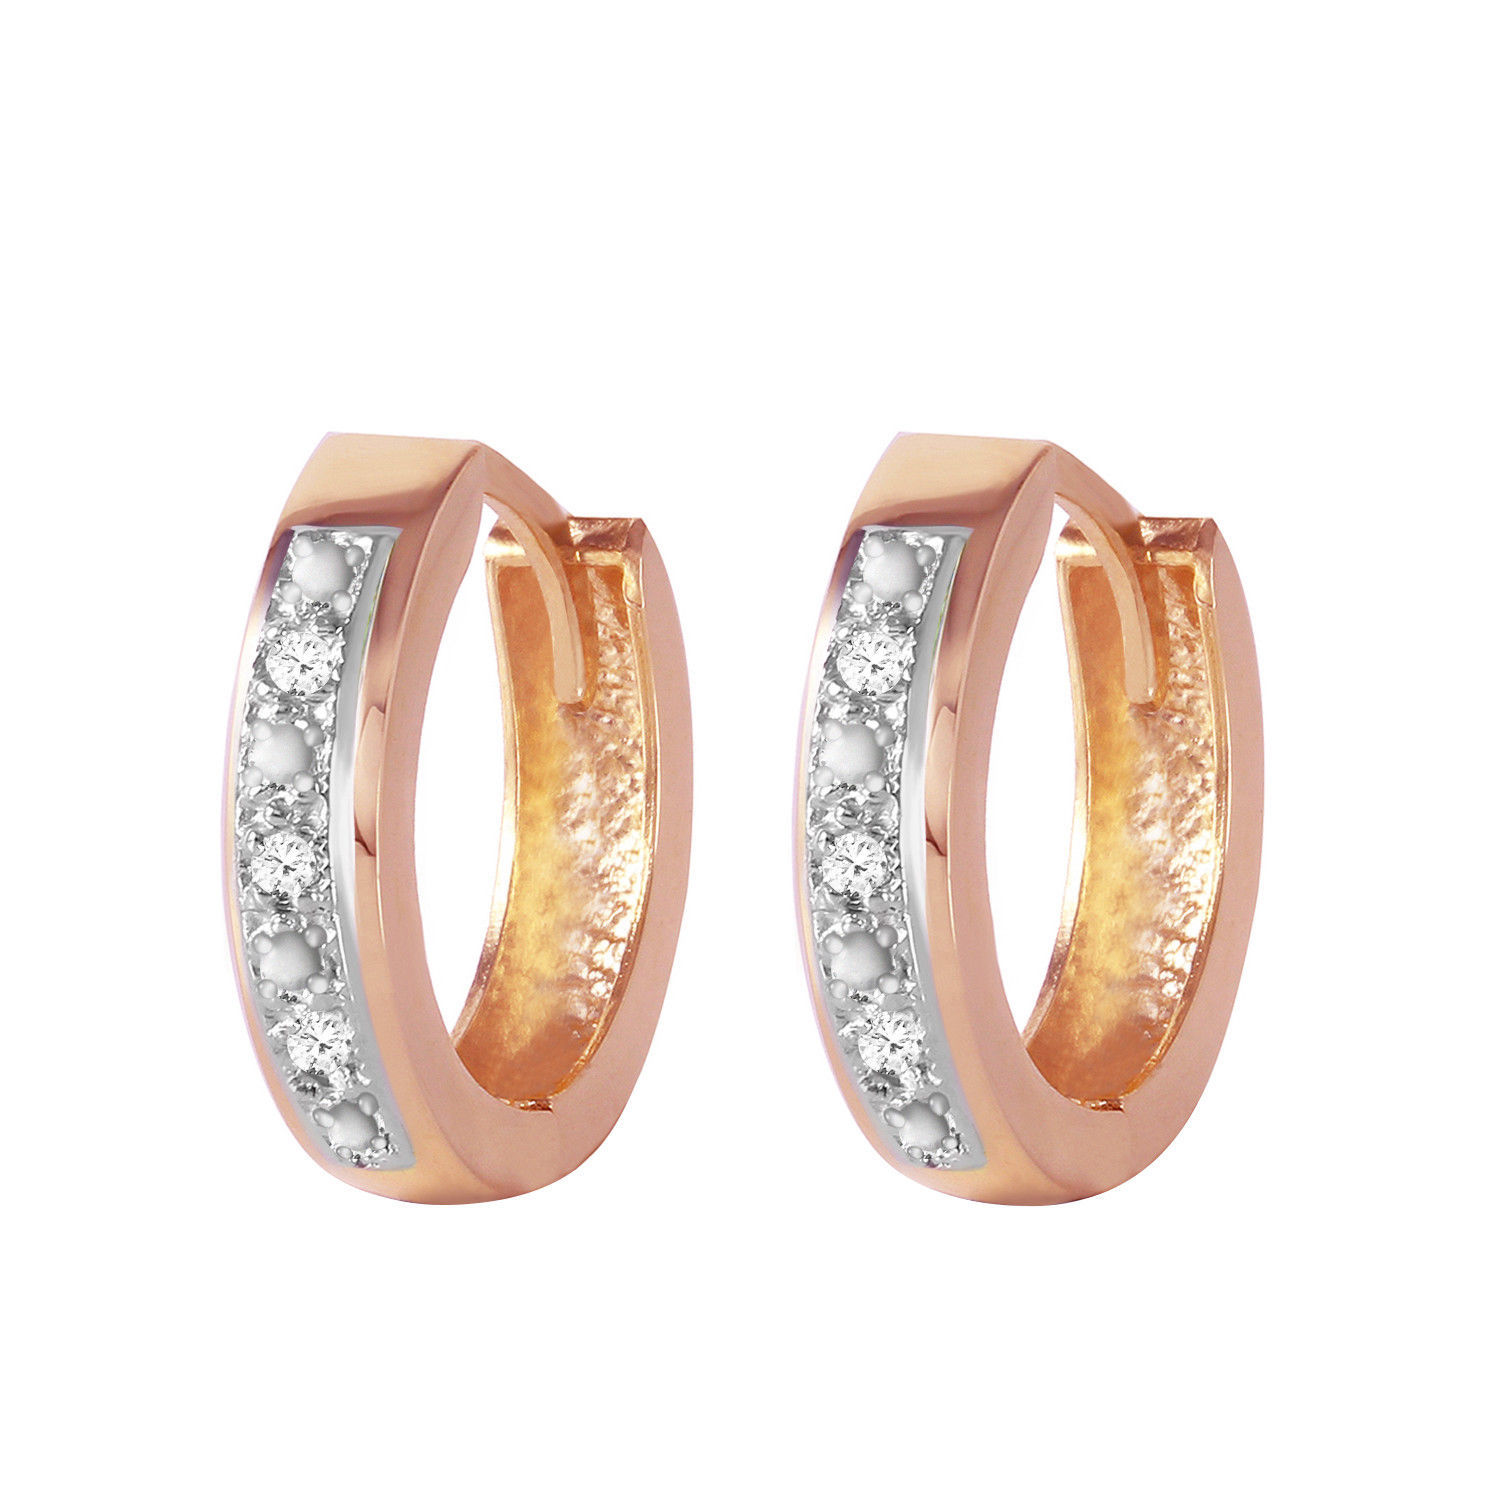 Primary image for 0.04 CTW 14K Solid Rose Gold Hoop Huggie Earrings Diamond